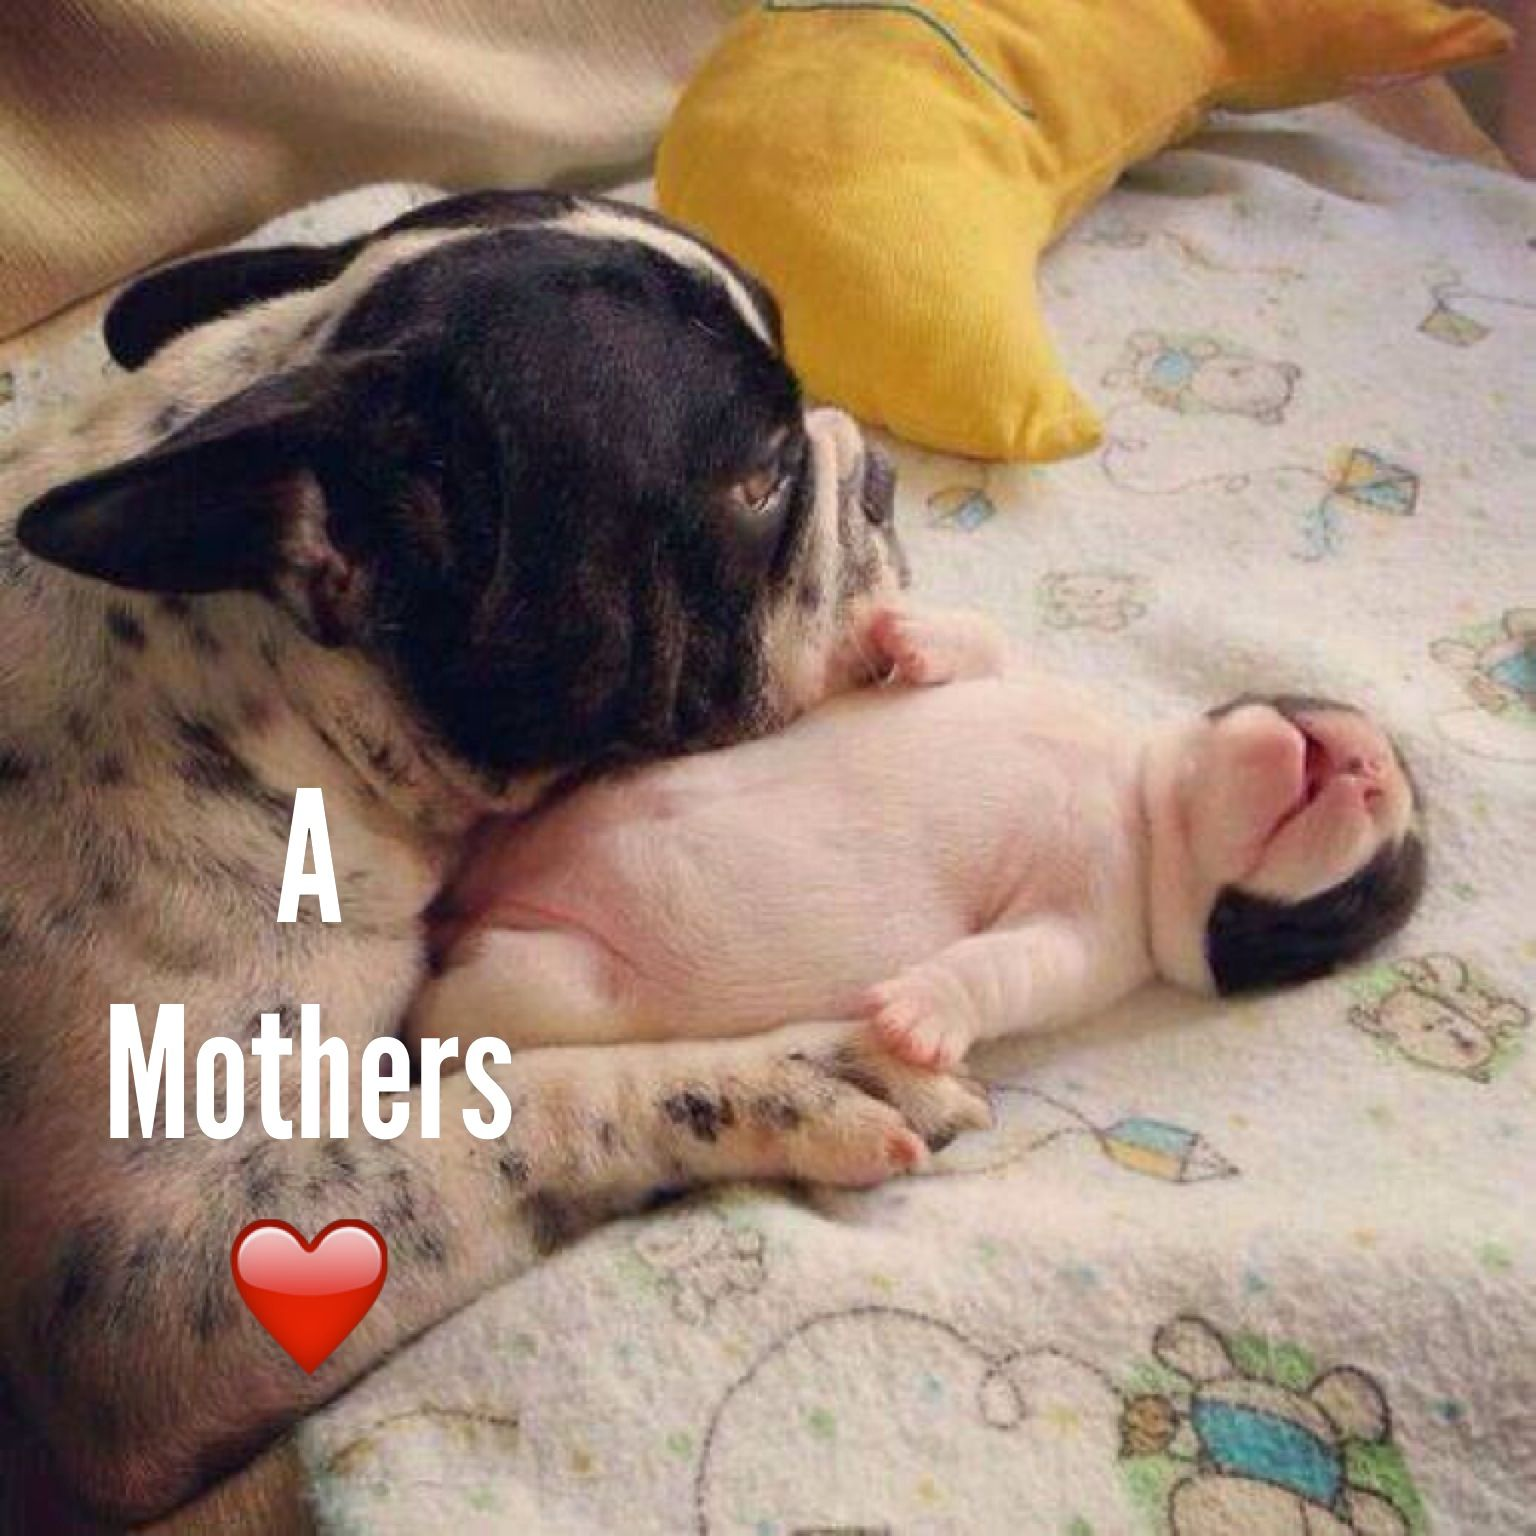 Diego S French Bulldog Athens Greece Baby Dogs Cute Dogs Dogs